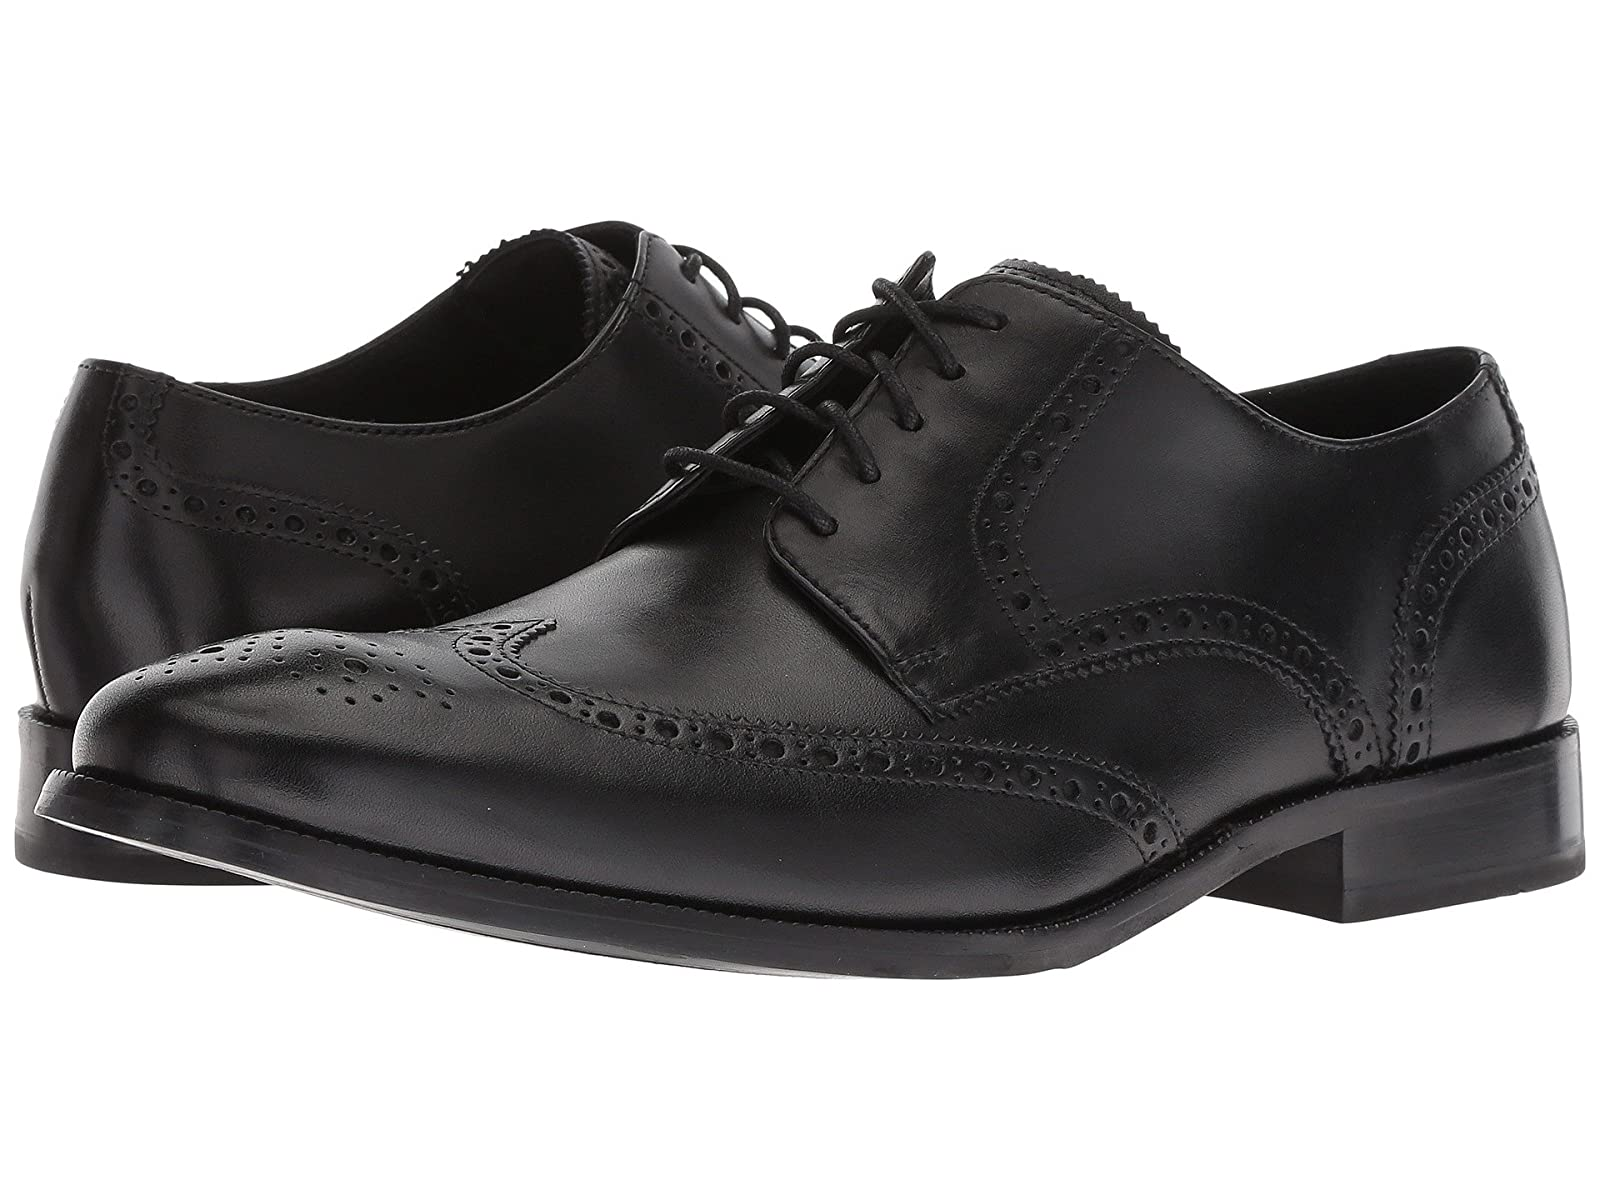 Cole Haan Benton Wingtip Oxford IICheap and distinctive eye-catching shoes